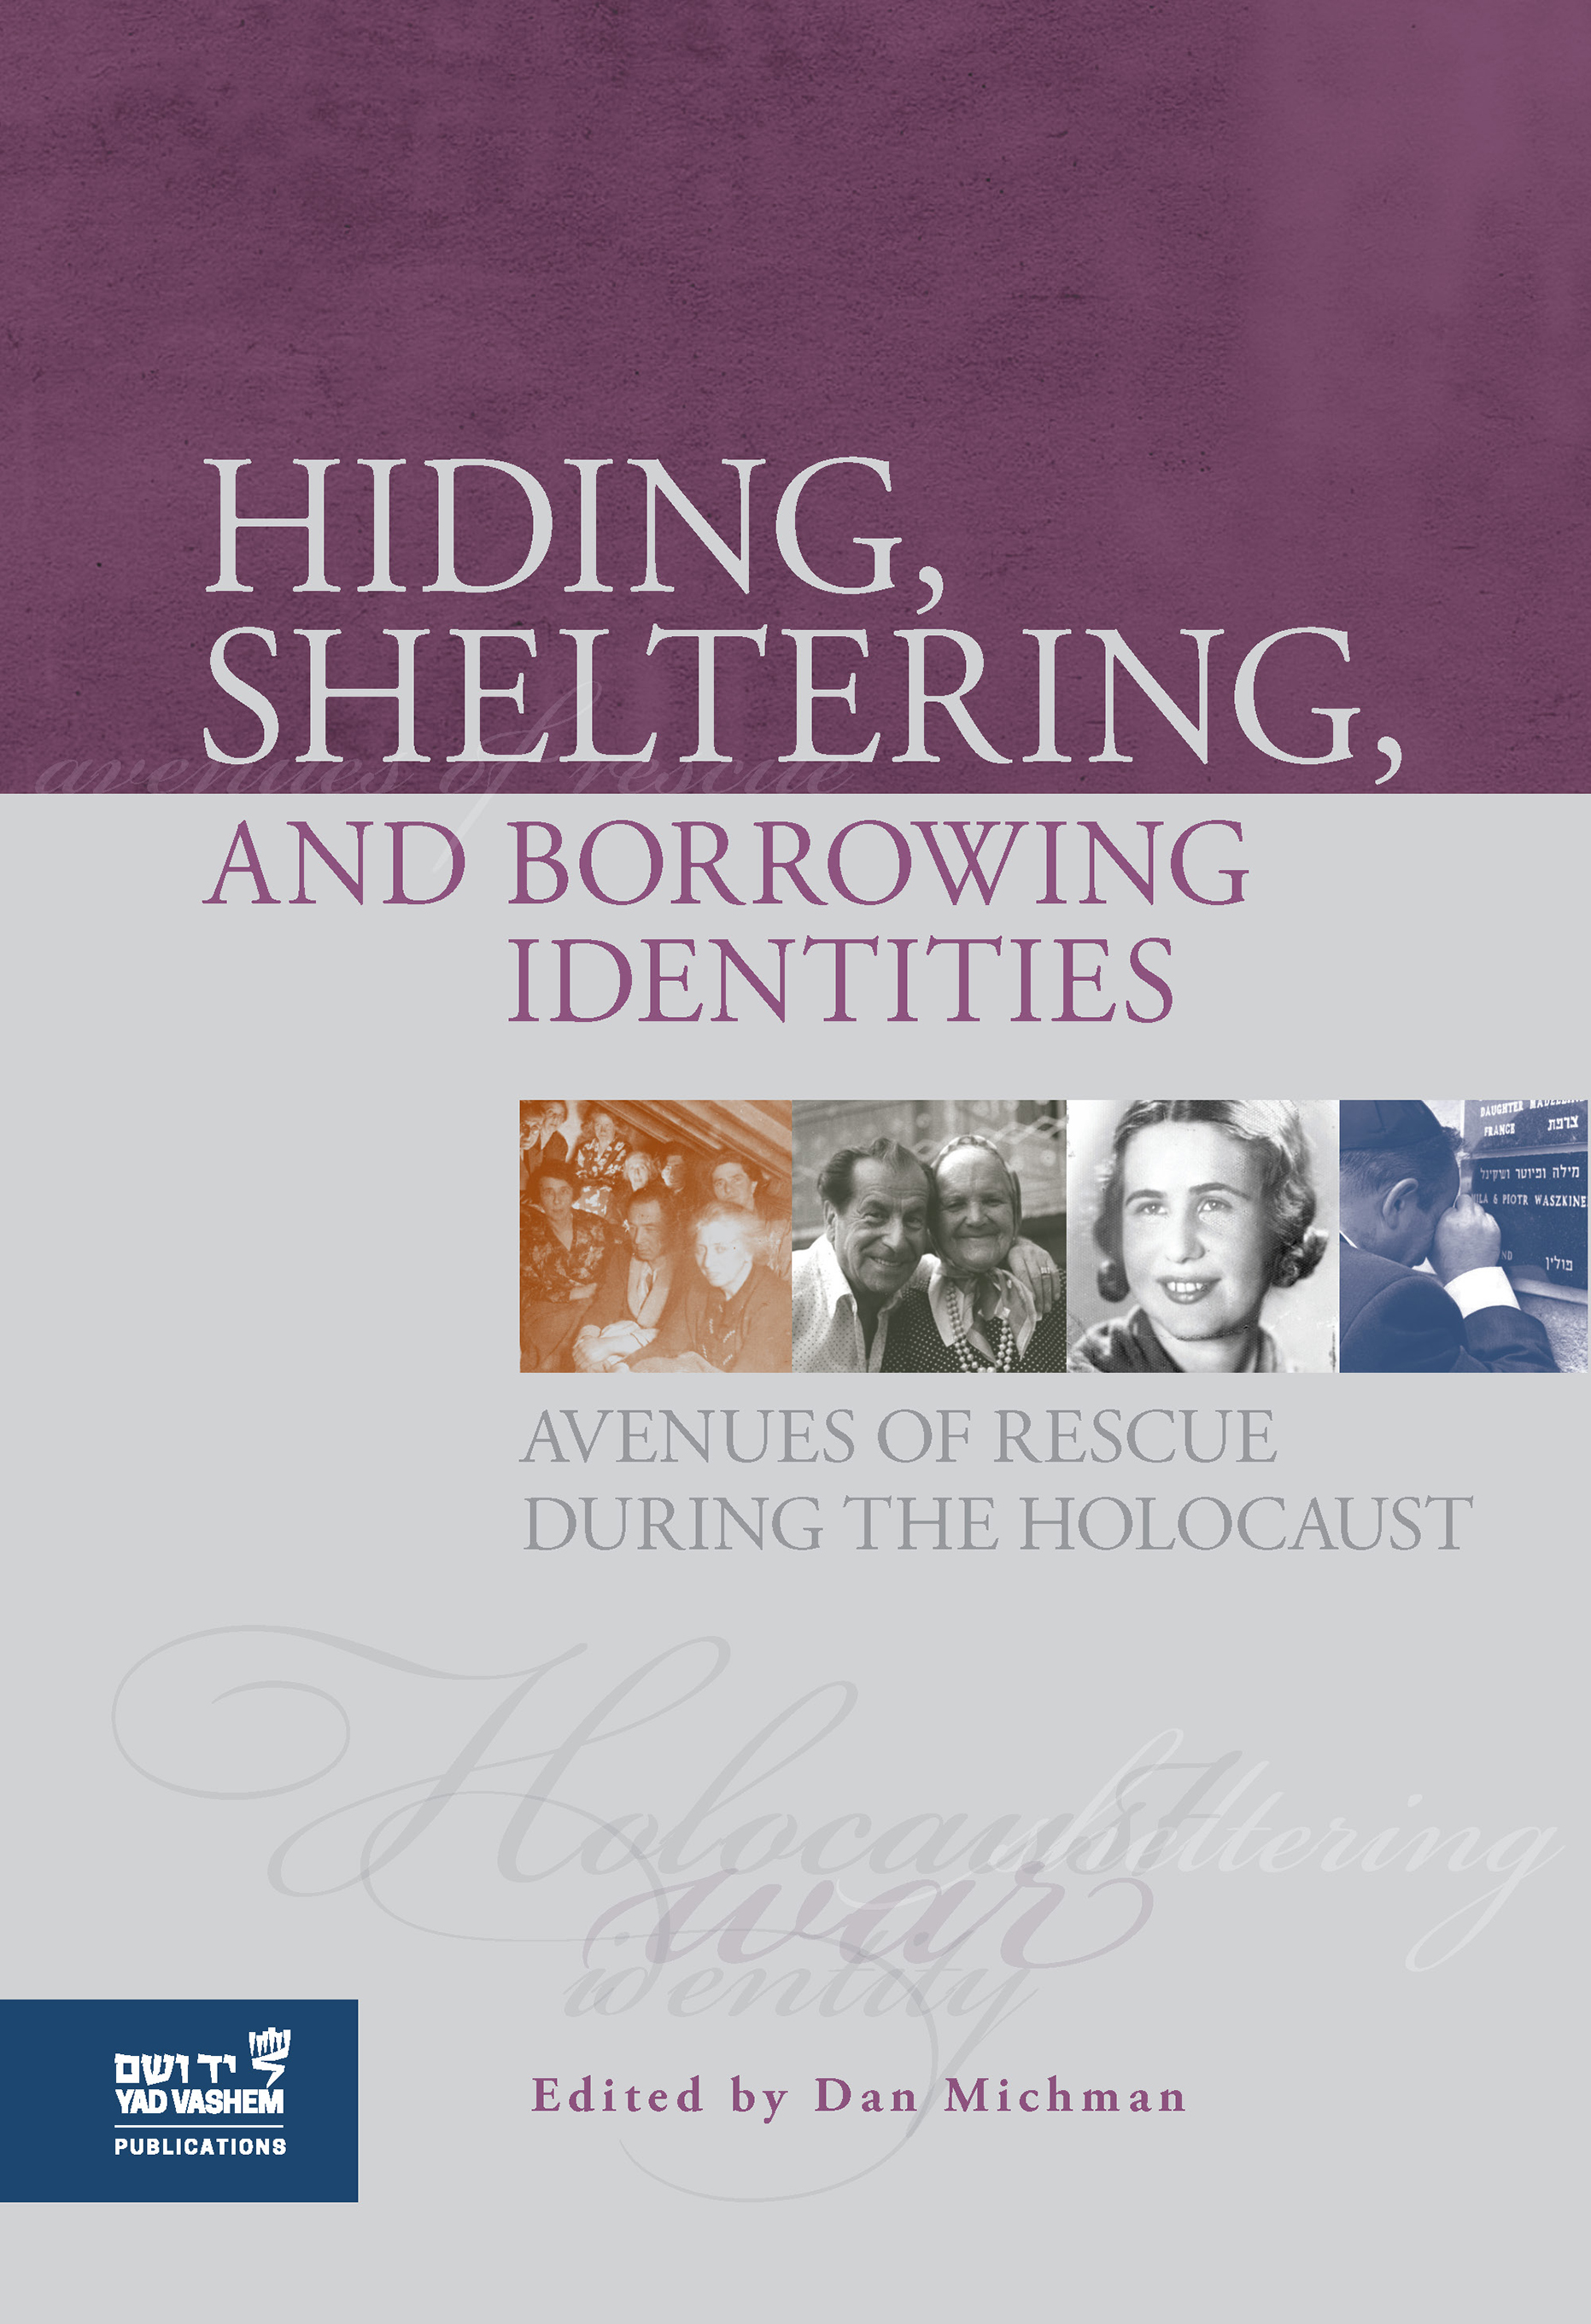 Hiding, Sheltering, and Borrowing Identities: Avenues of Rescue during the Holocaust